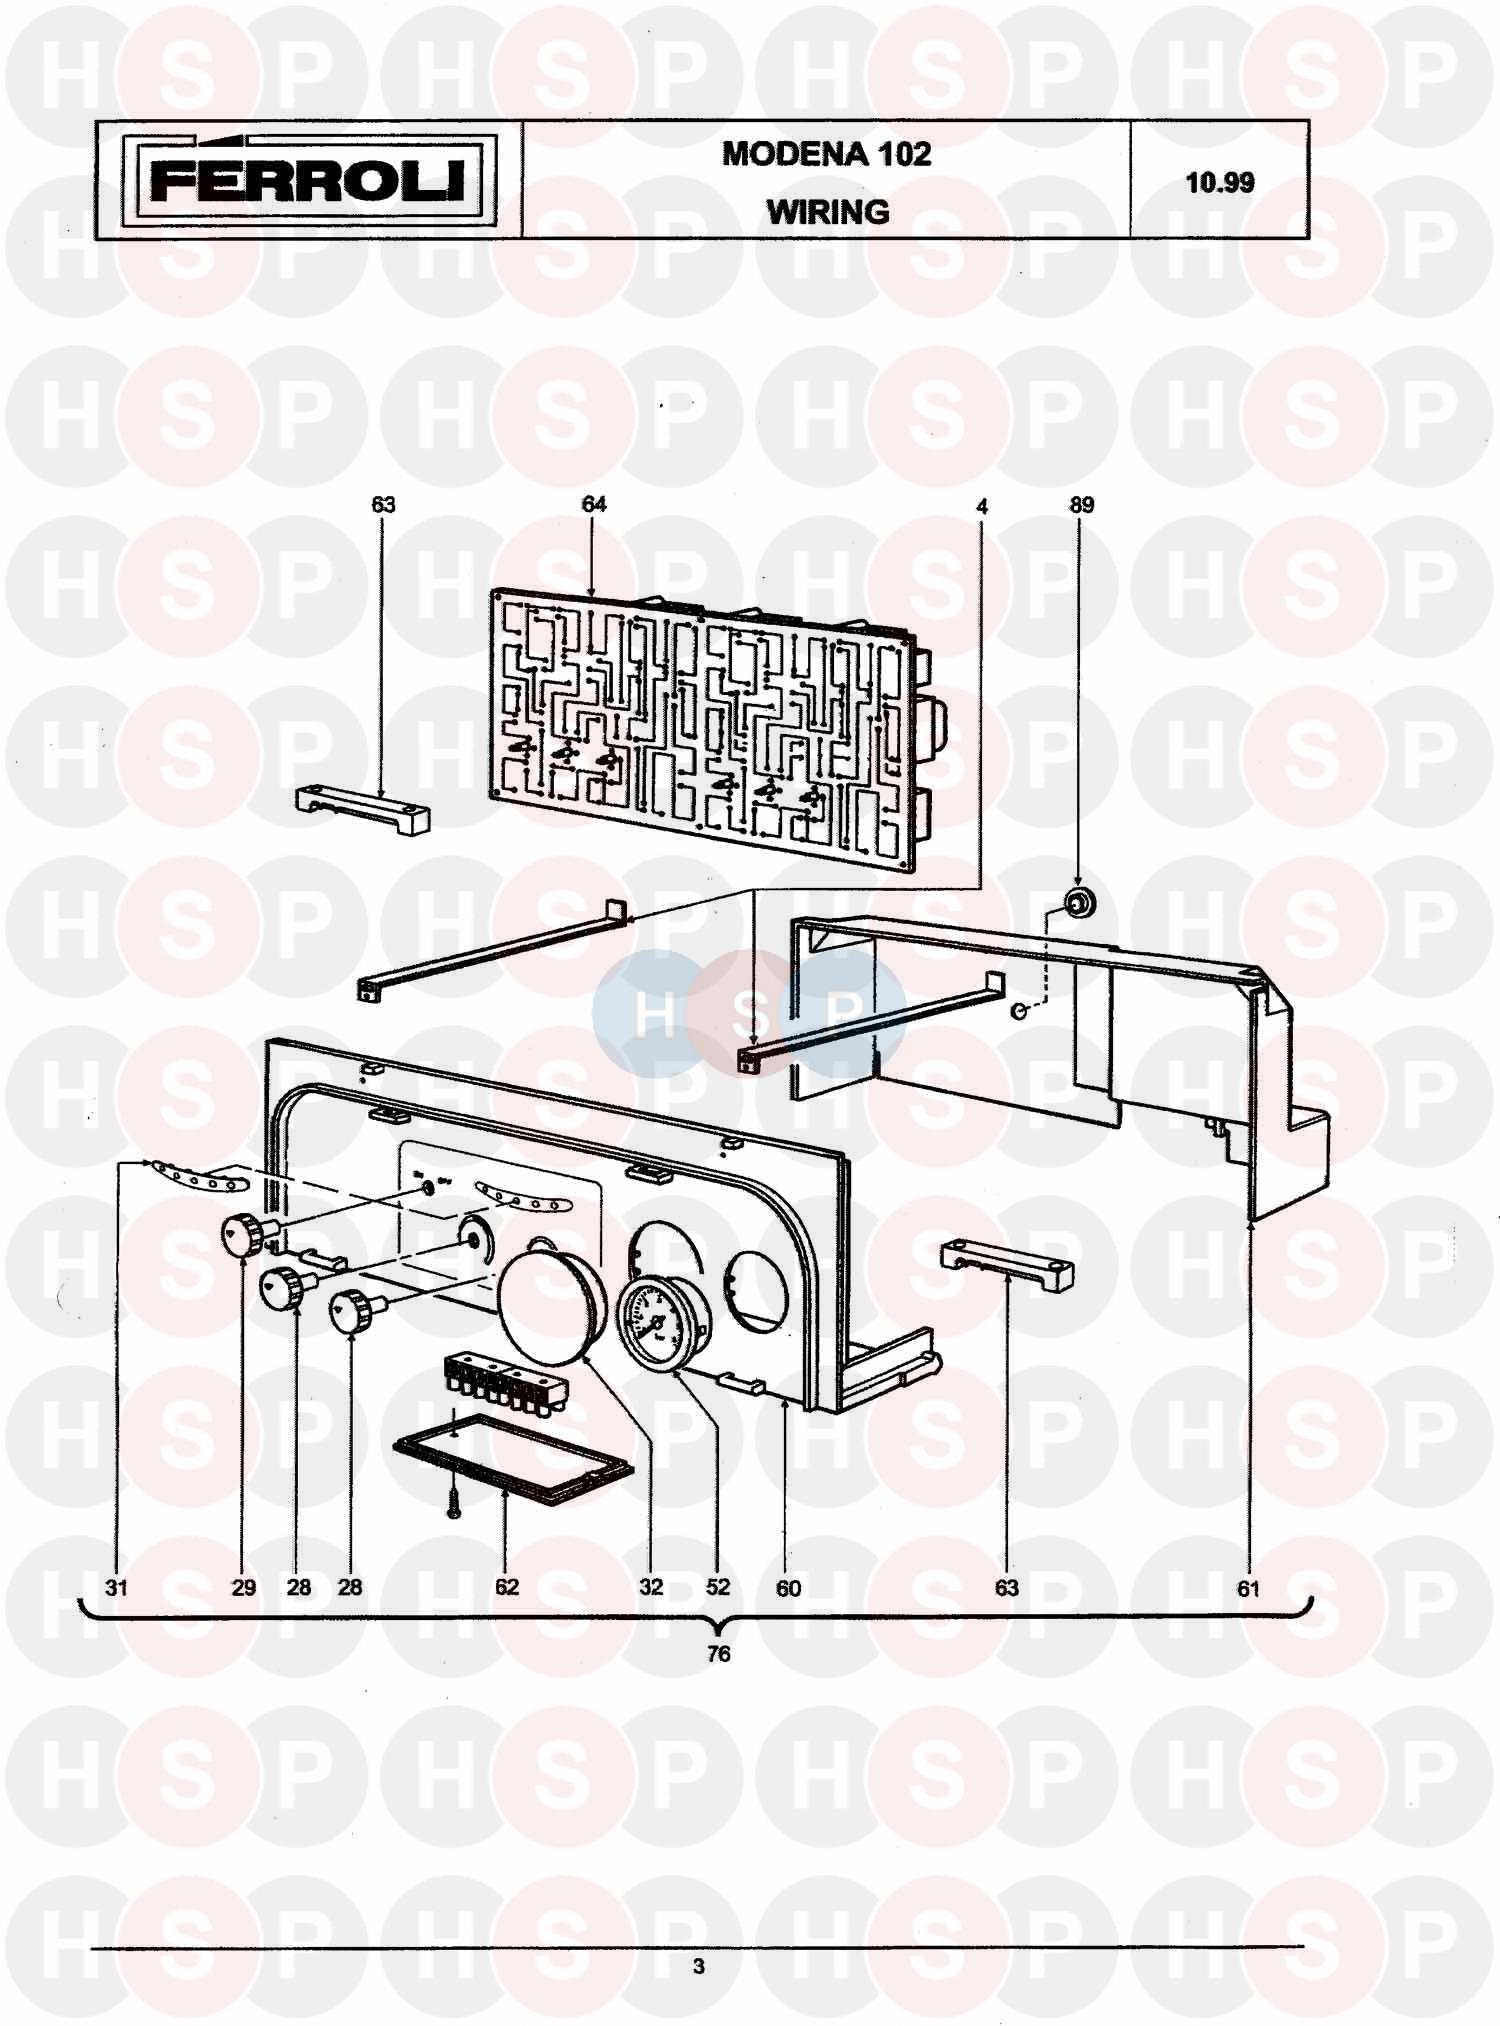 Ferroli modena 102 boiler assembly 2 diagram heating spare parts boiler assembly 2 diagram for ferroli modena 102 asfbconference2016 Choice Image